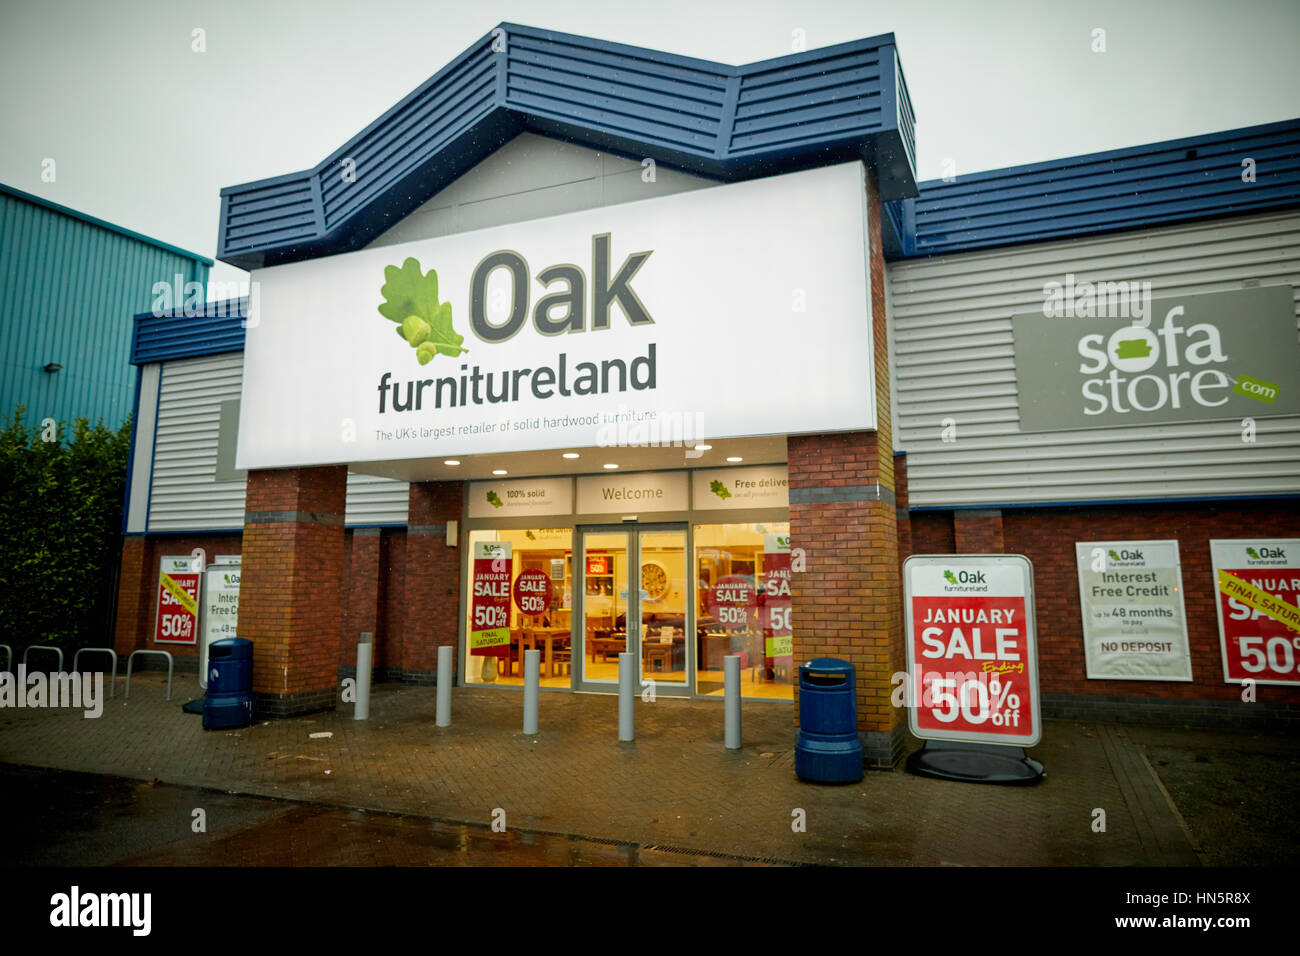 The Exterior Of Macclesfield Oak Furniture Land A Privately Owned British  Designer, Manufacturer And